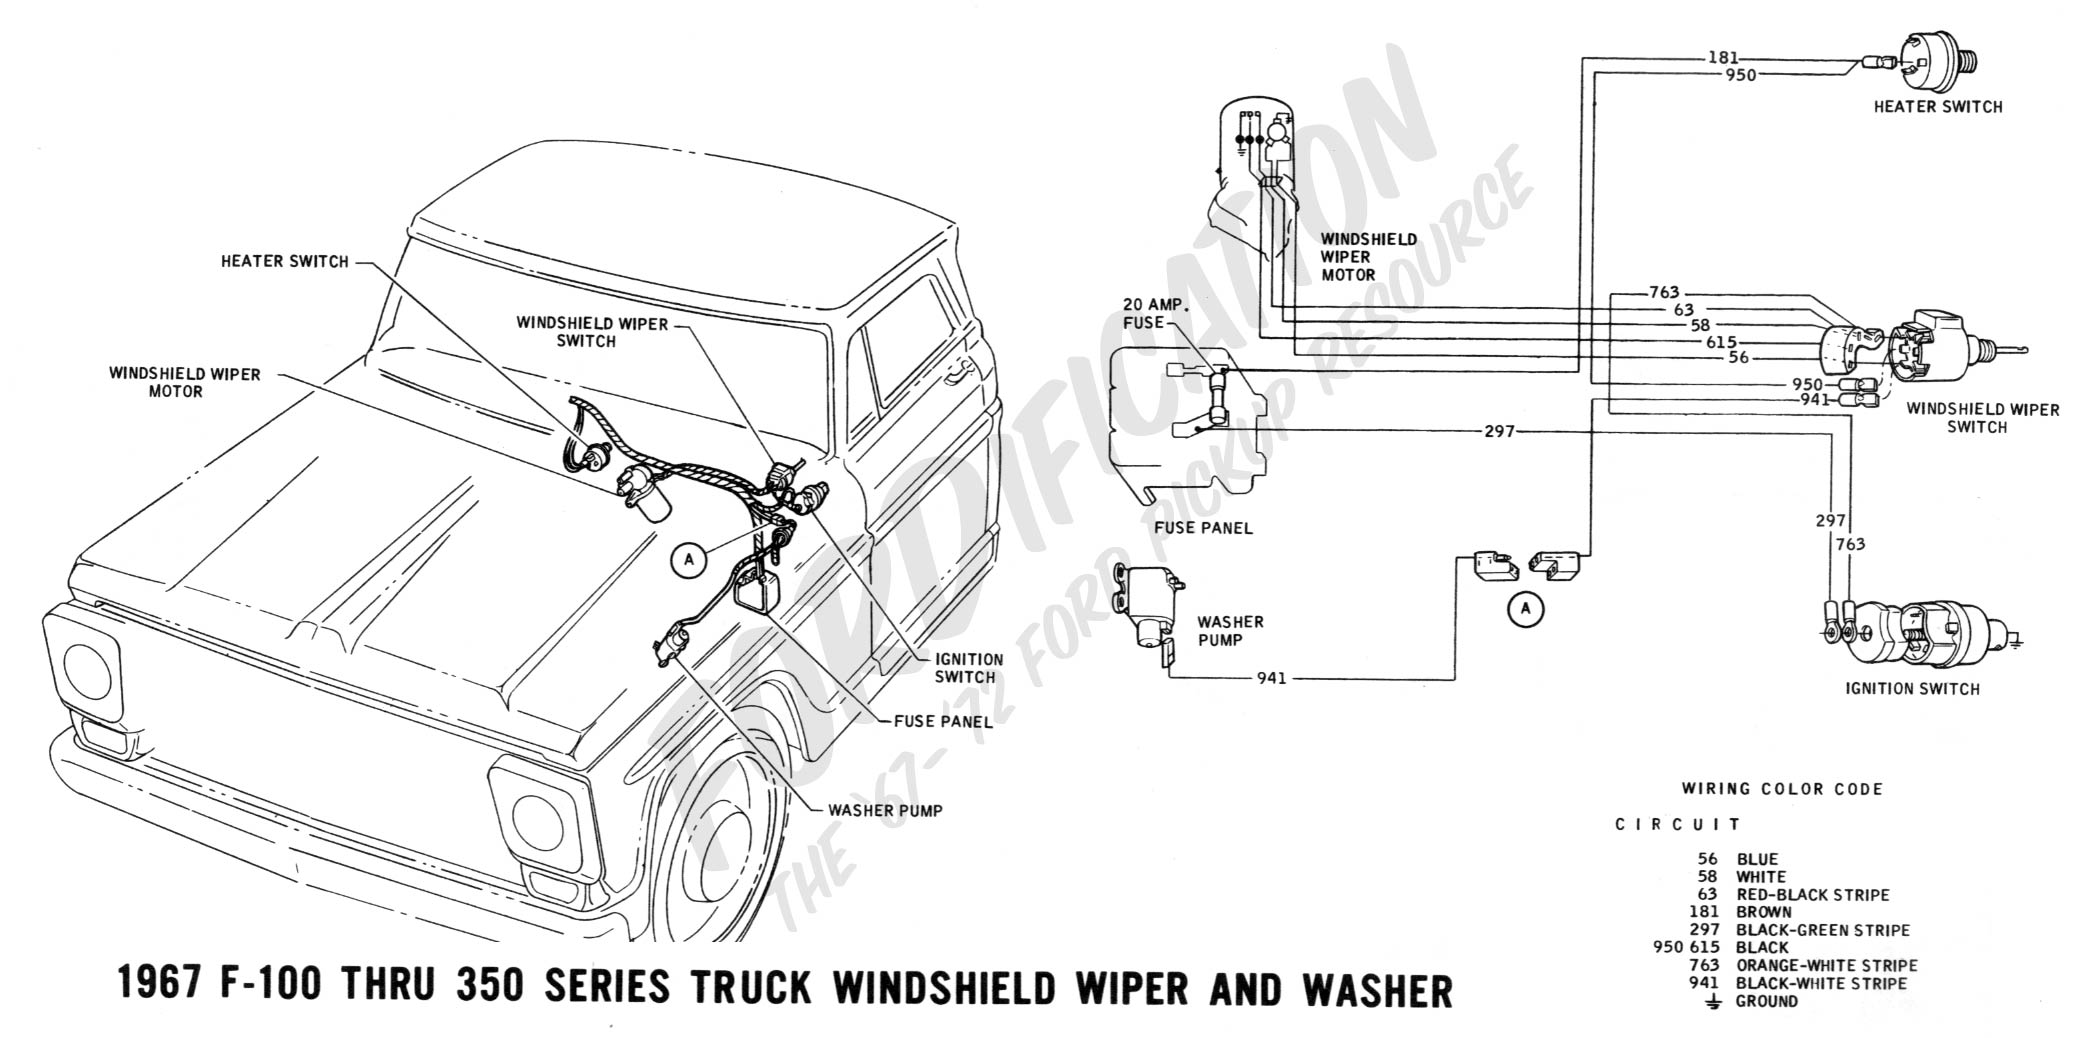 1966 Chevy Fuse Box Auto Electrical Wiring Diagram Mustang Skid Steer Diagrams 1982 Ford Truck Technical Drawings And Schematics